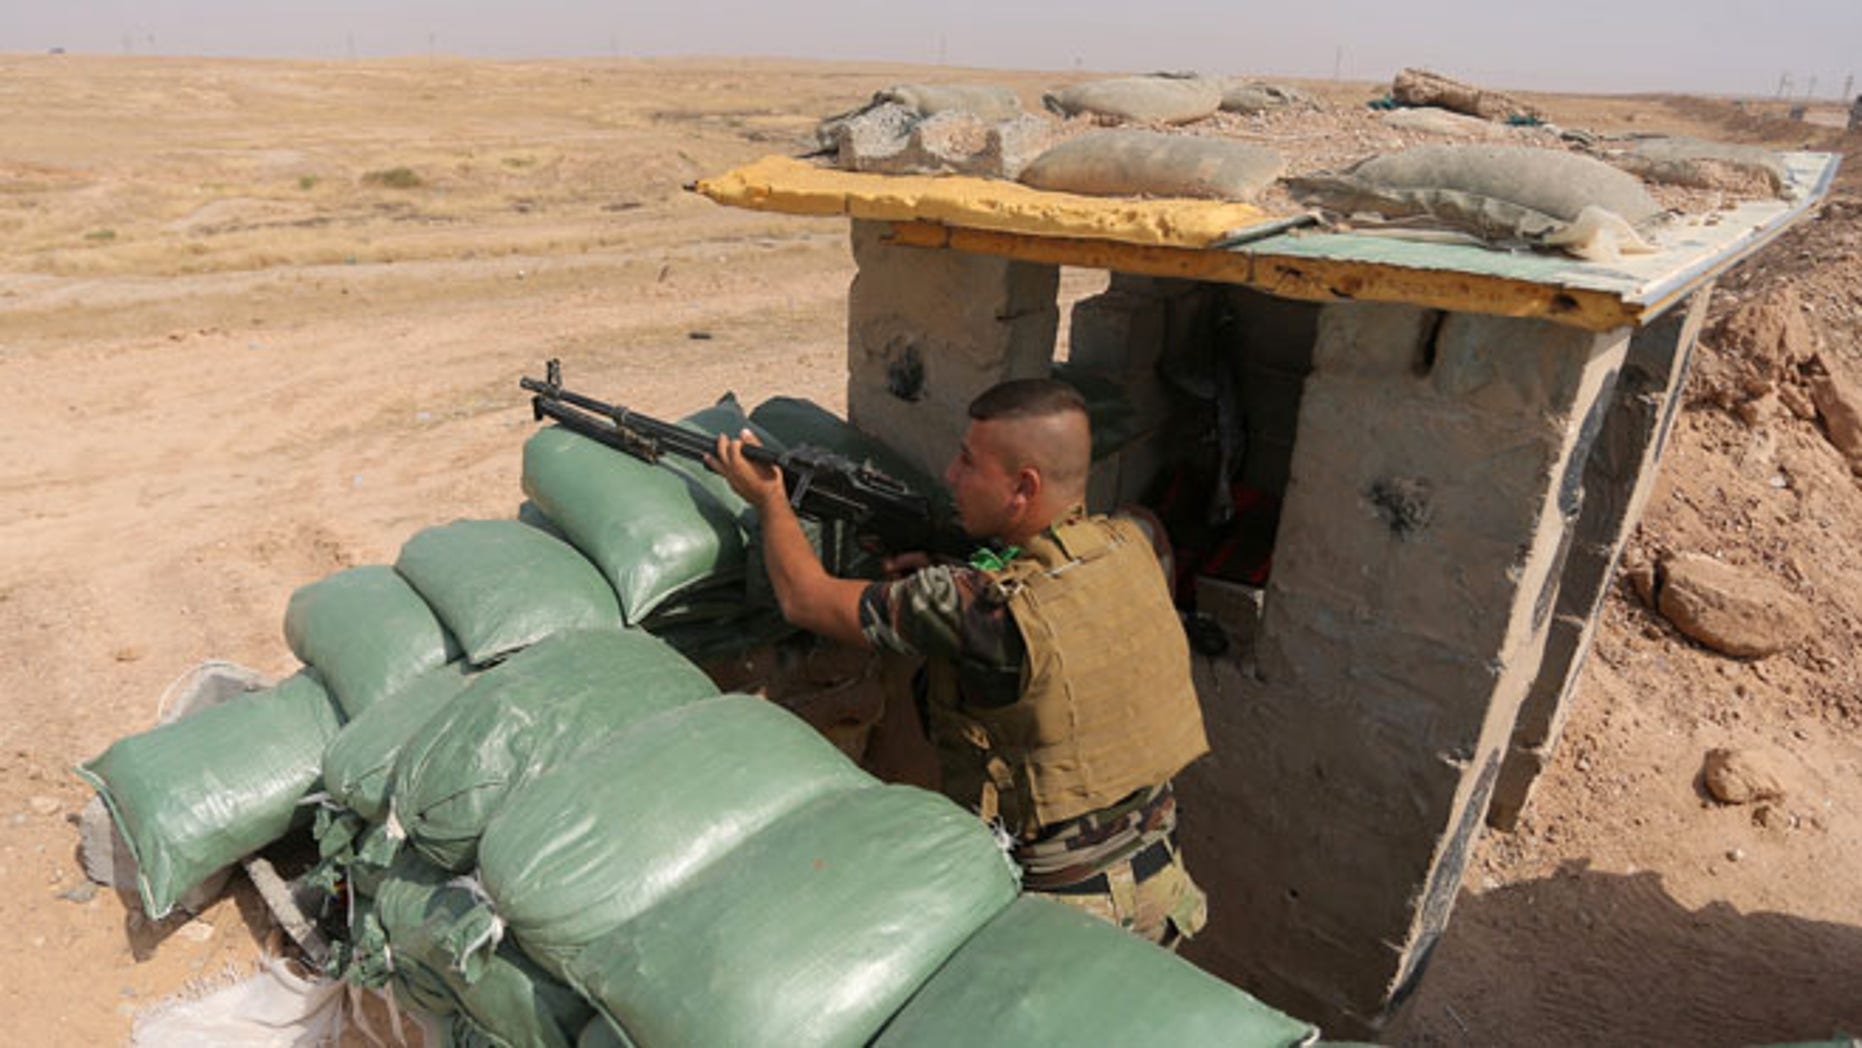 Oct. 2, 2014: An Iraqi Shiite militiamen takes cover after clashes with militants from the Islamic State group